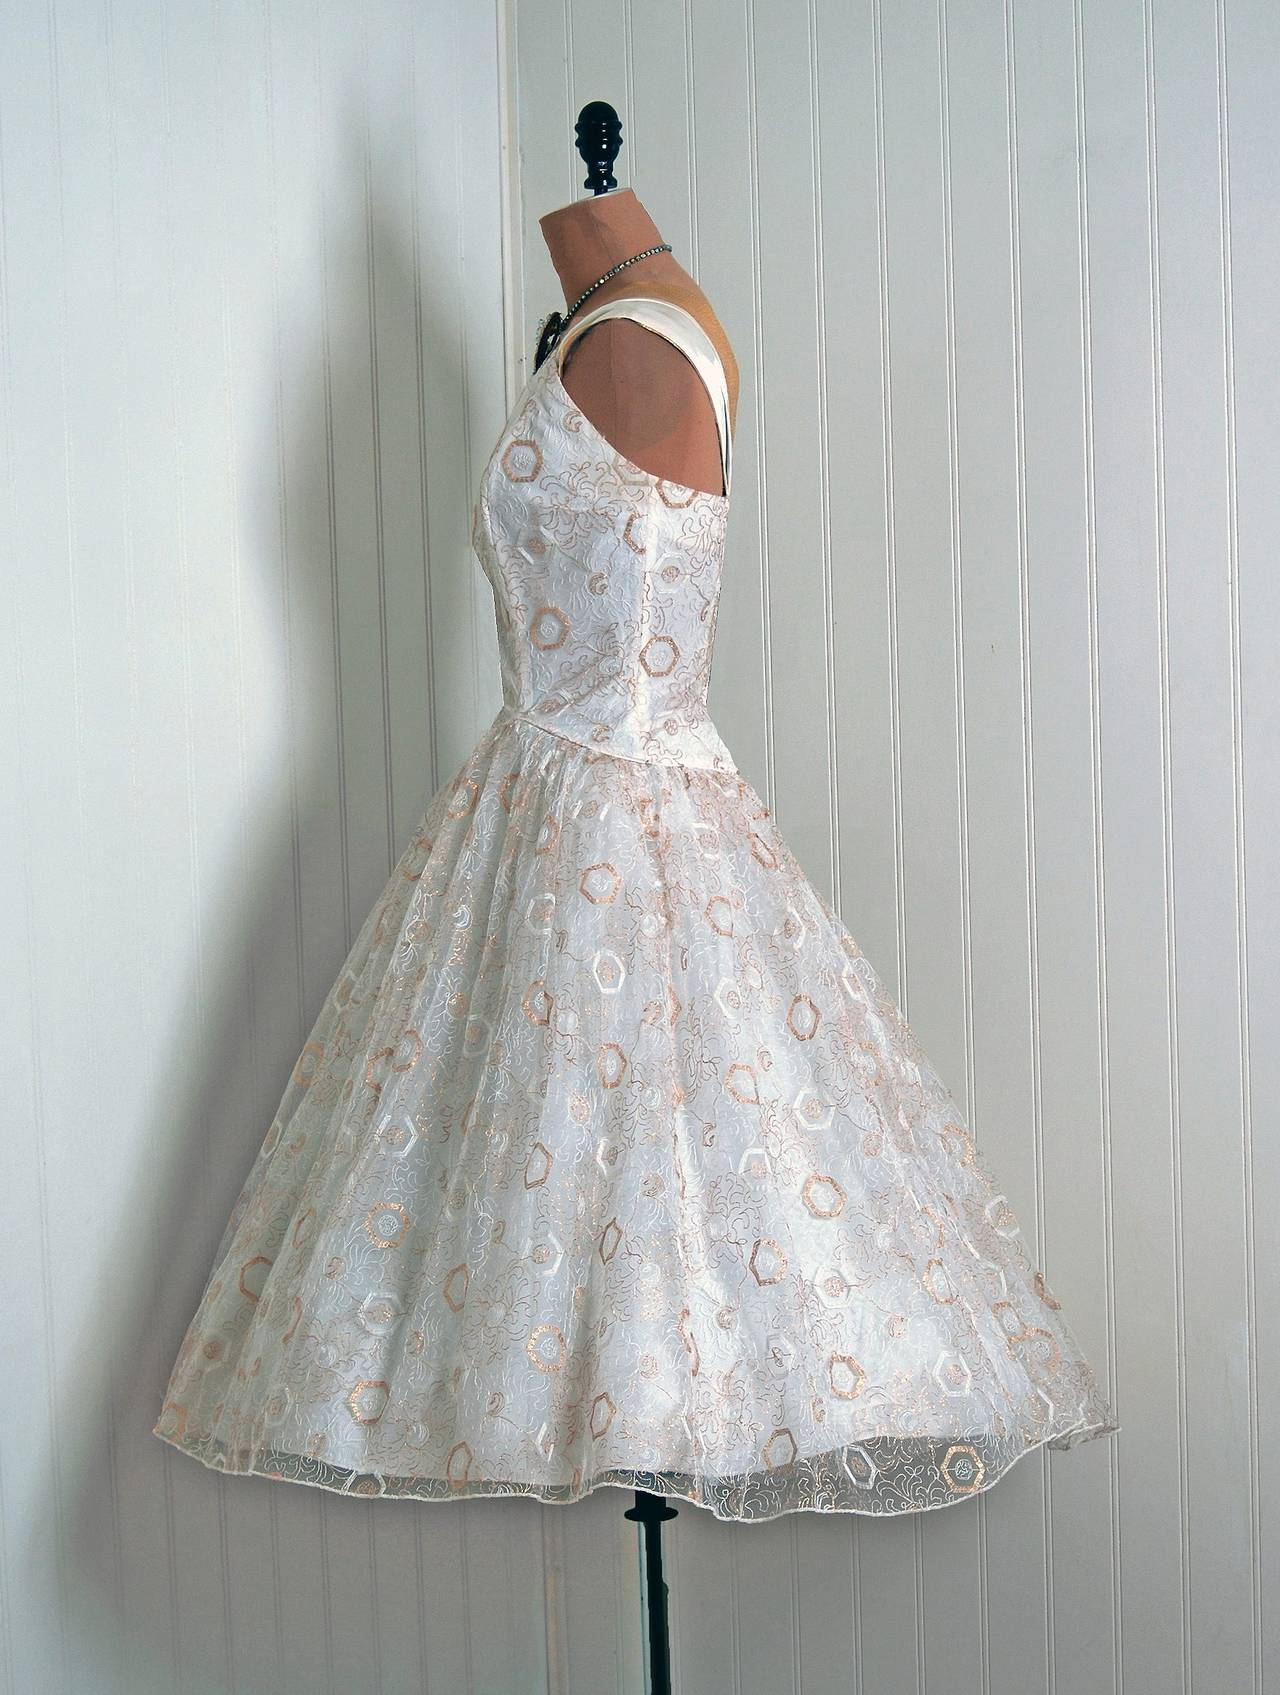 1950's Emma Domb White & Gold Embroidered Tulle One-Shoulder Party Dress In Excellent Condition For Sale In Beverly Hills, CA